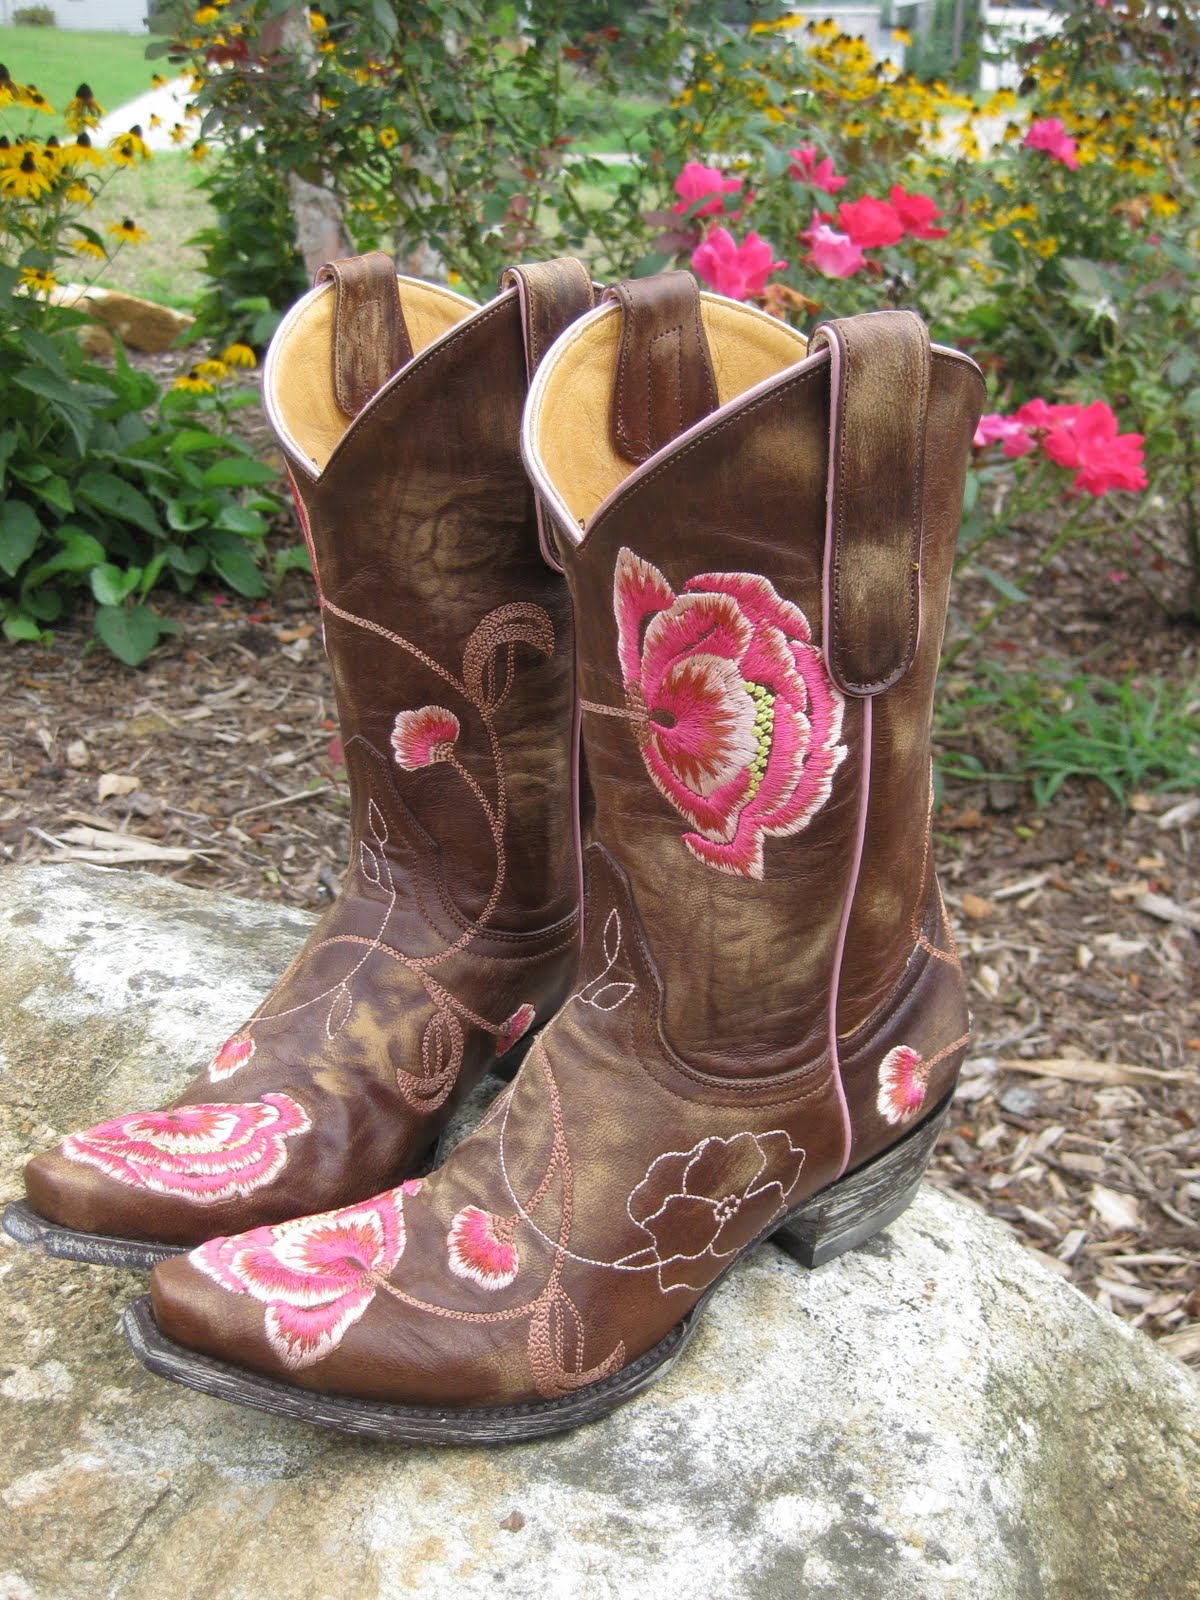 Cute Country Boots Backgrounds